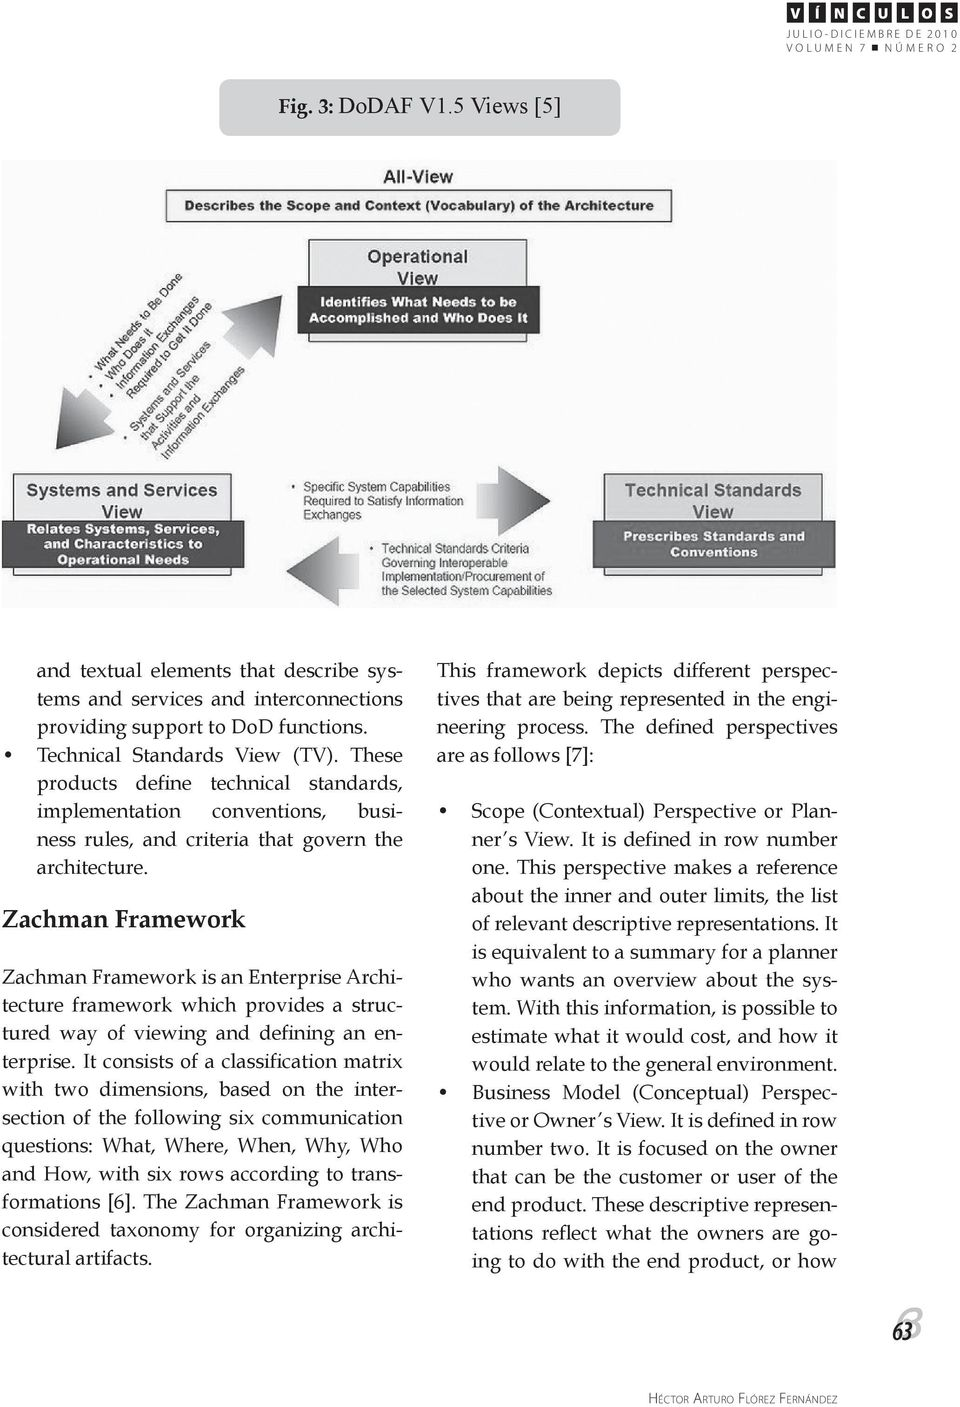 Zachman Framework Zachman Framework is an Enterprise Architecture framework which provides a structured way of viewing and defining an enterprise.